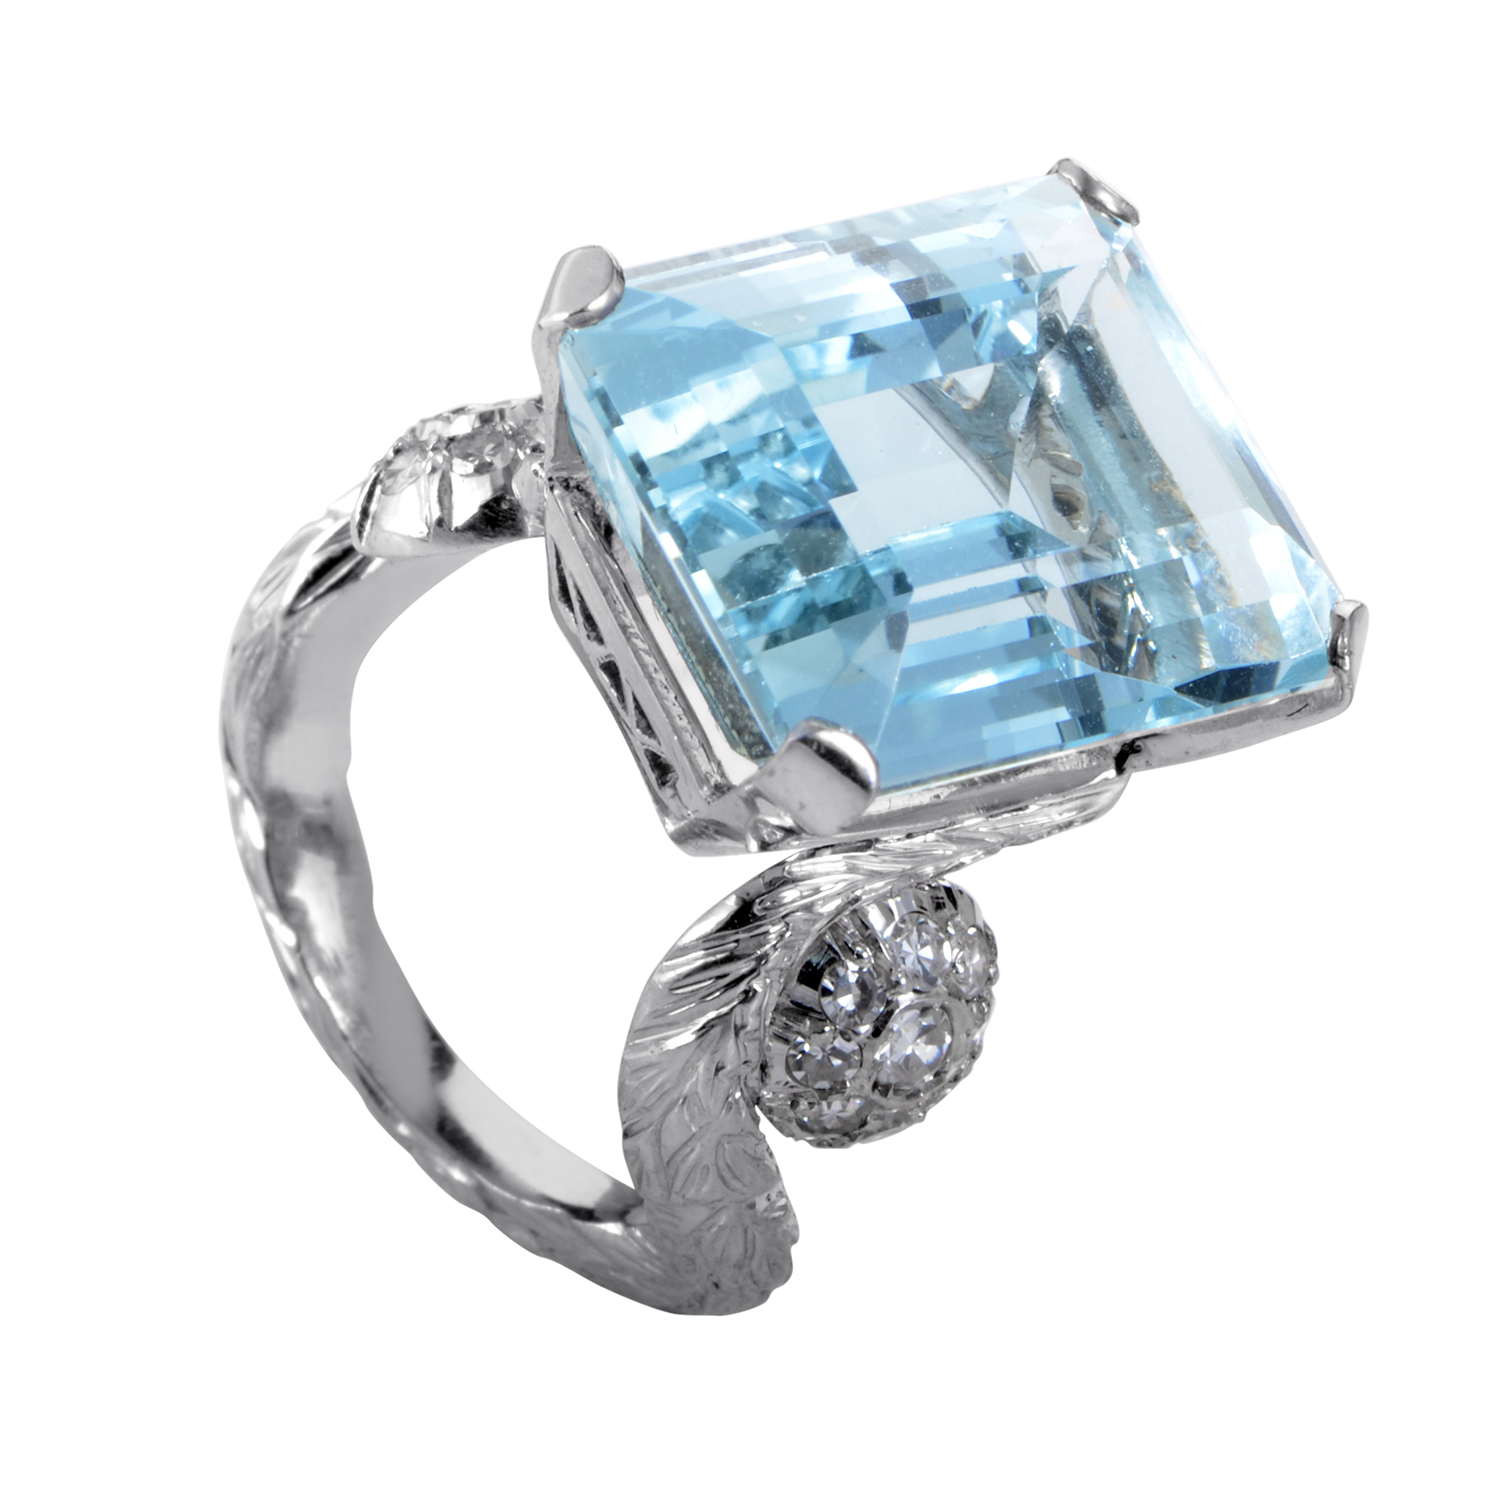 Women's 18K White Gold Diamond & Aquamarine Ring MFC04-072716